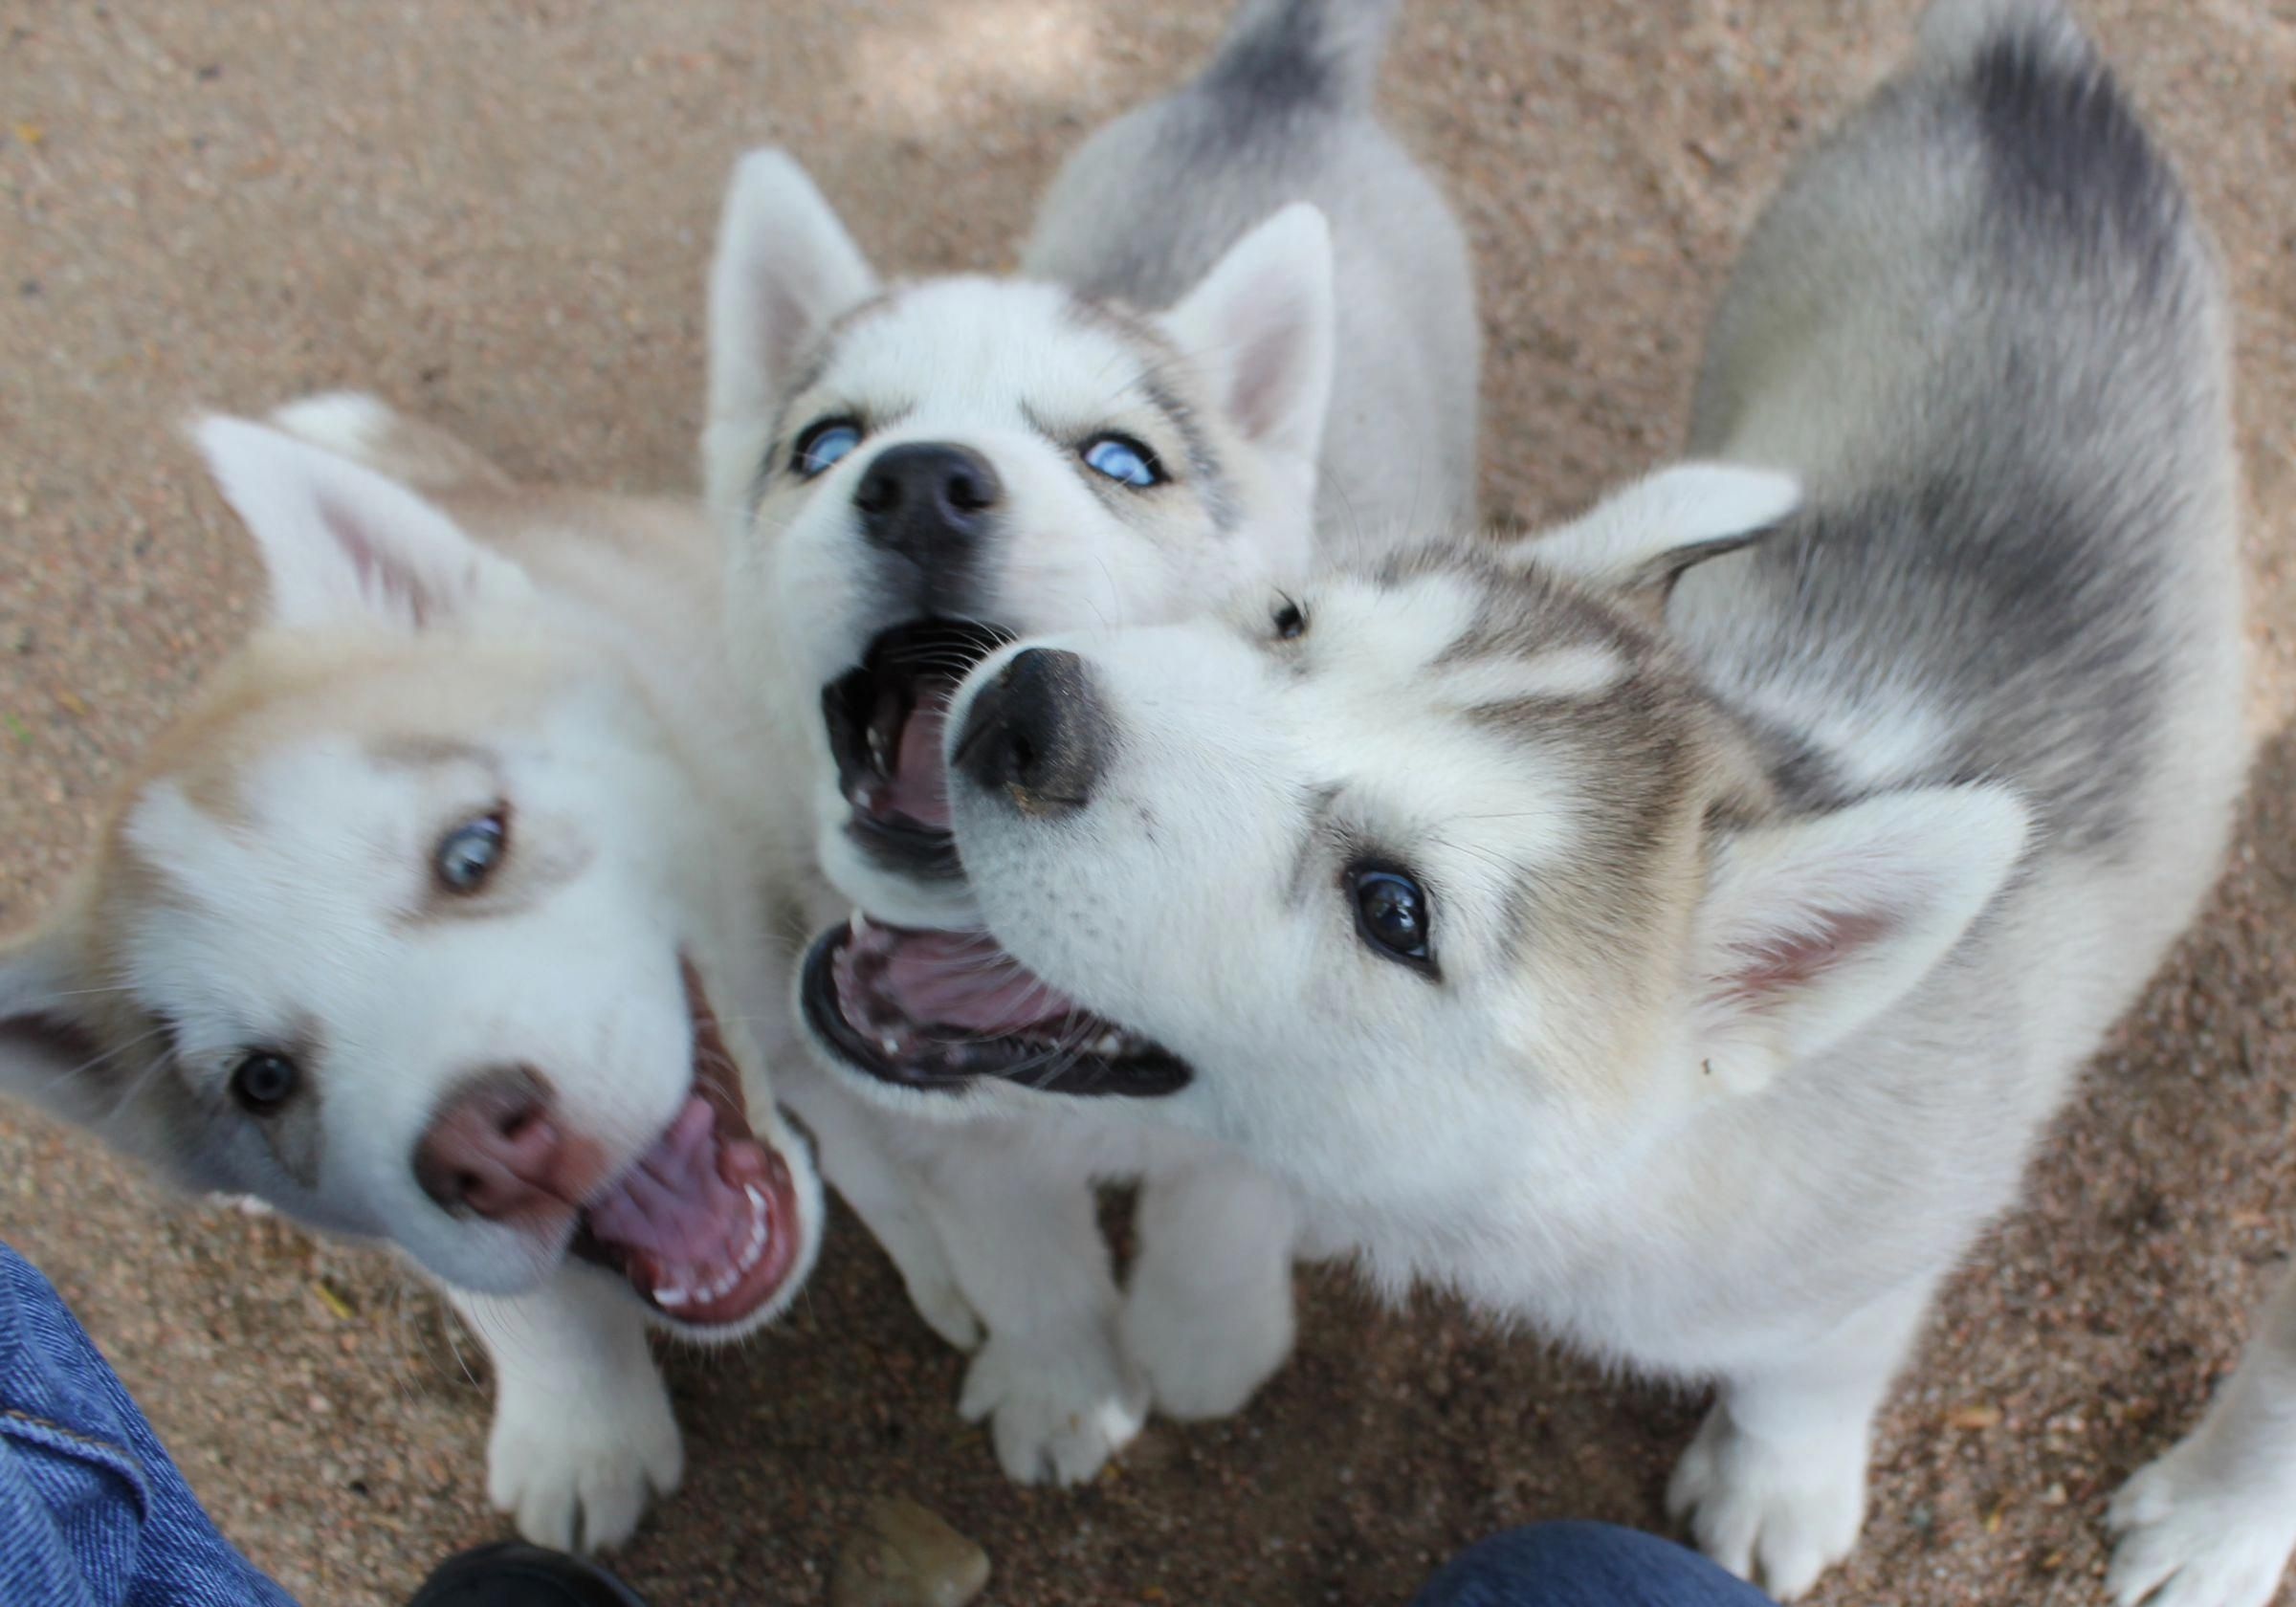 Find Out More On Athletic Siberian Husky Dogs Exercise Needs Siberianhuskypuppy Siberianhuskeylife Siberianhusk Husky Puppy Siberian Husky Cute Puppy Breeds